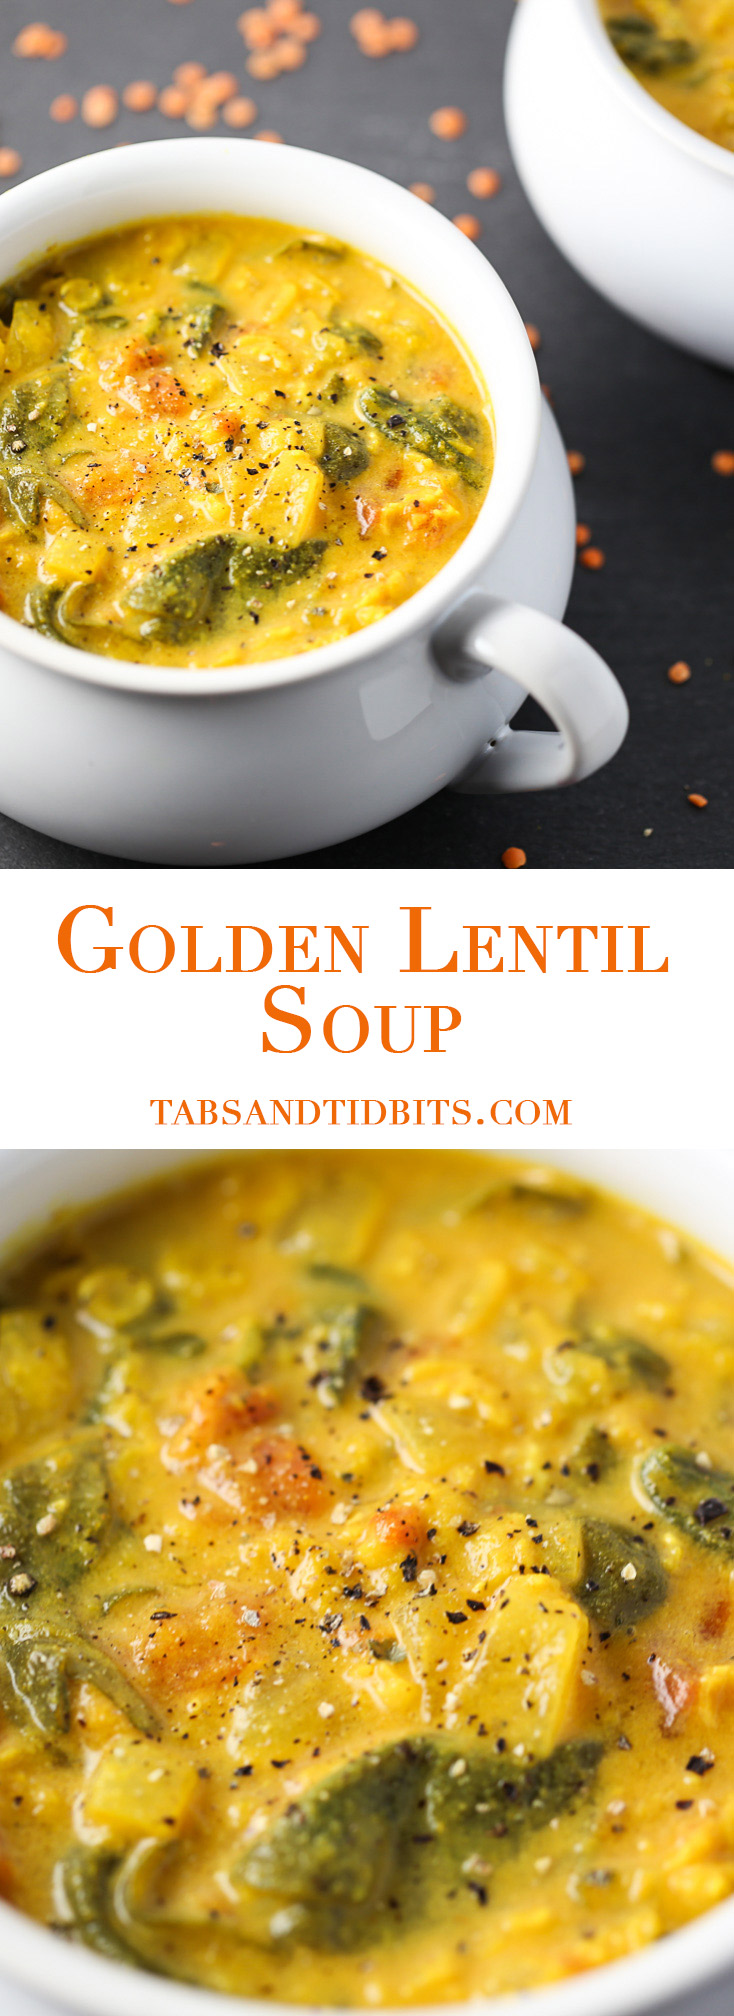 Golden Lentil Soup - A nutrient and flavor-packed soup that cooks up fast and delicious!